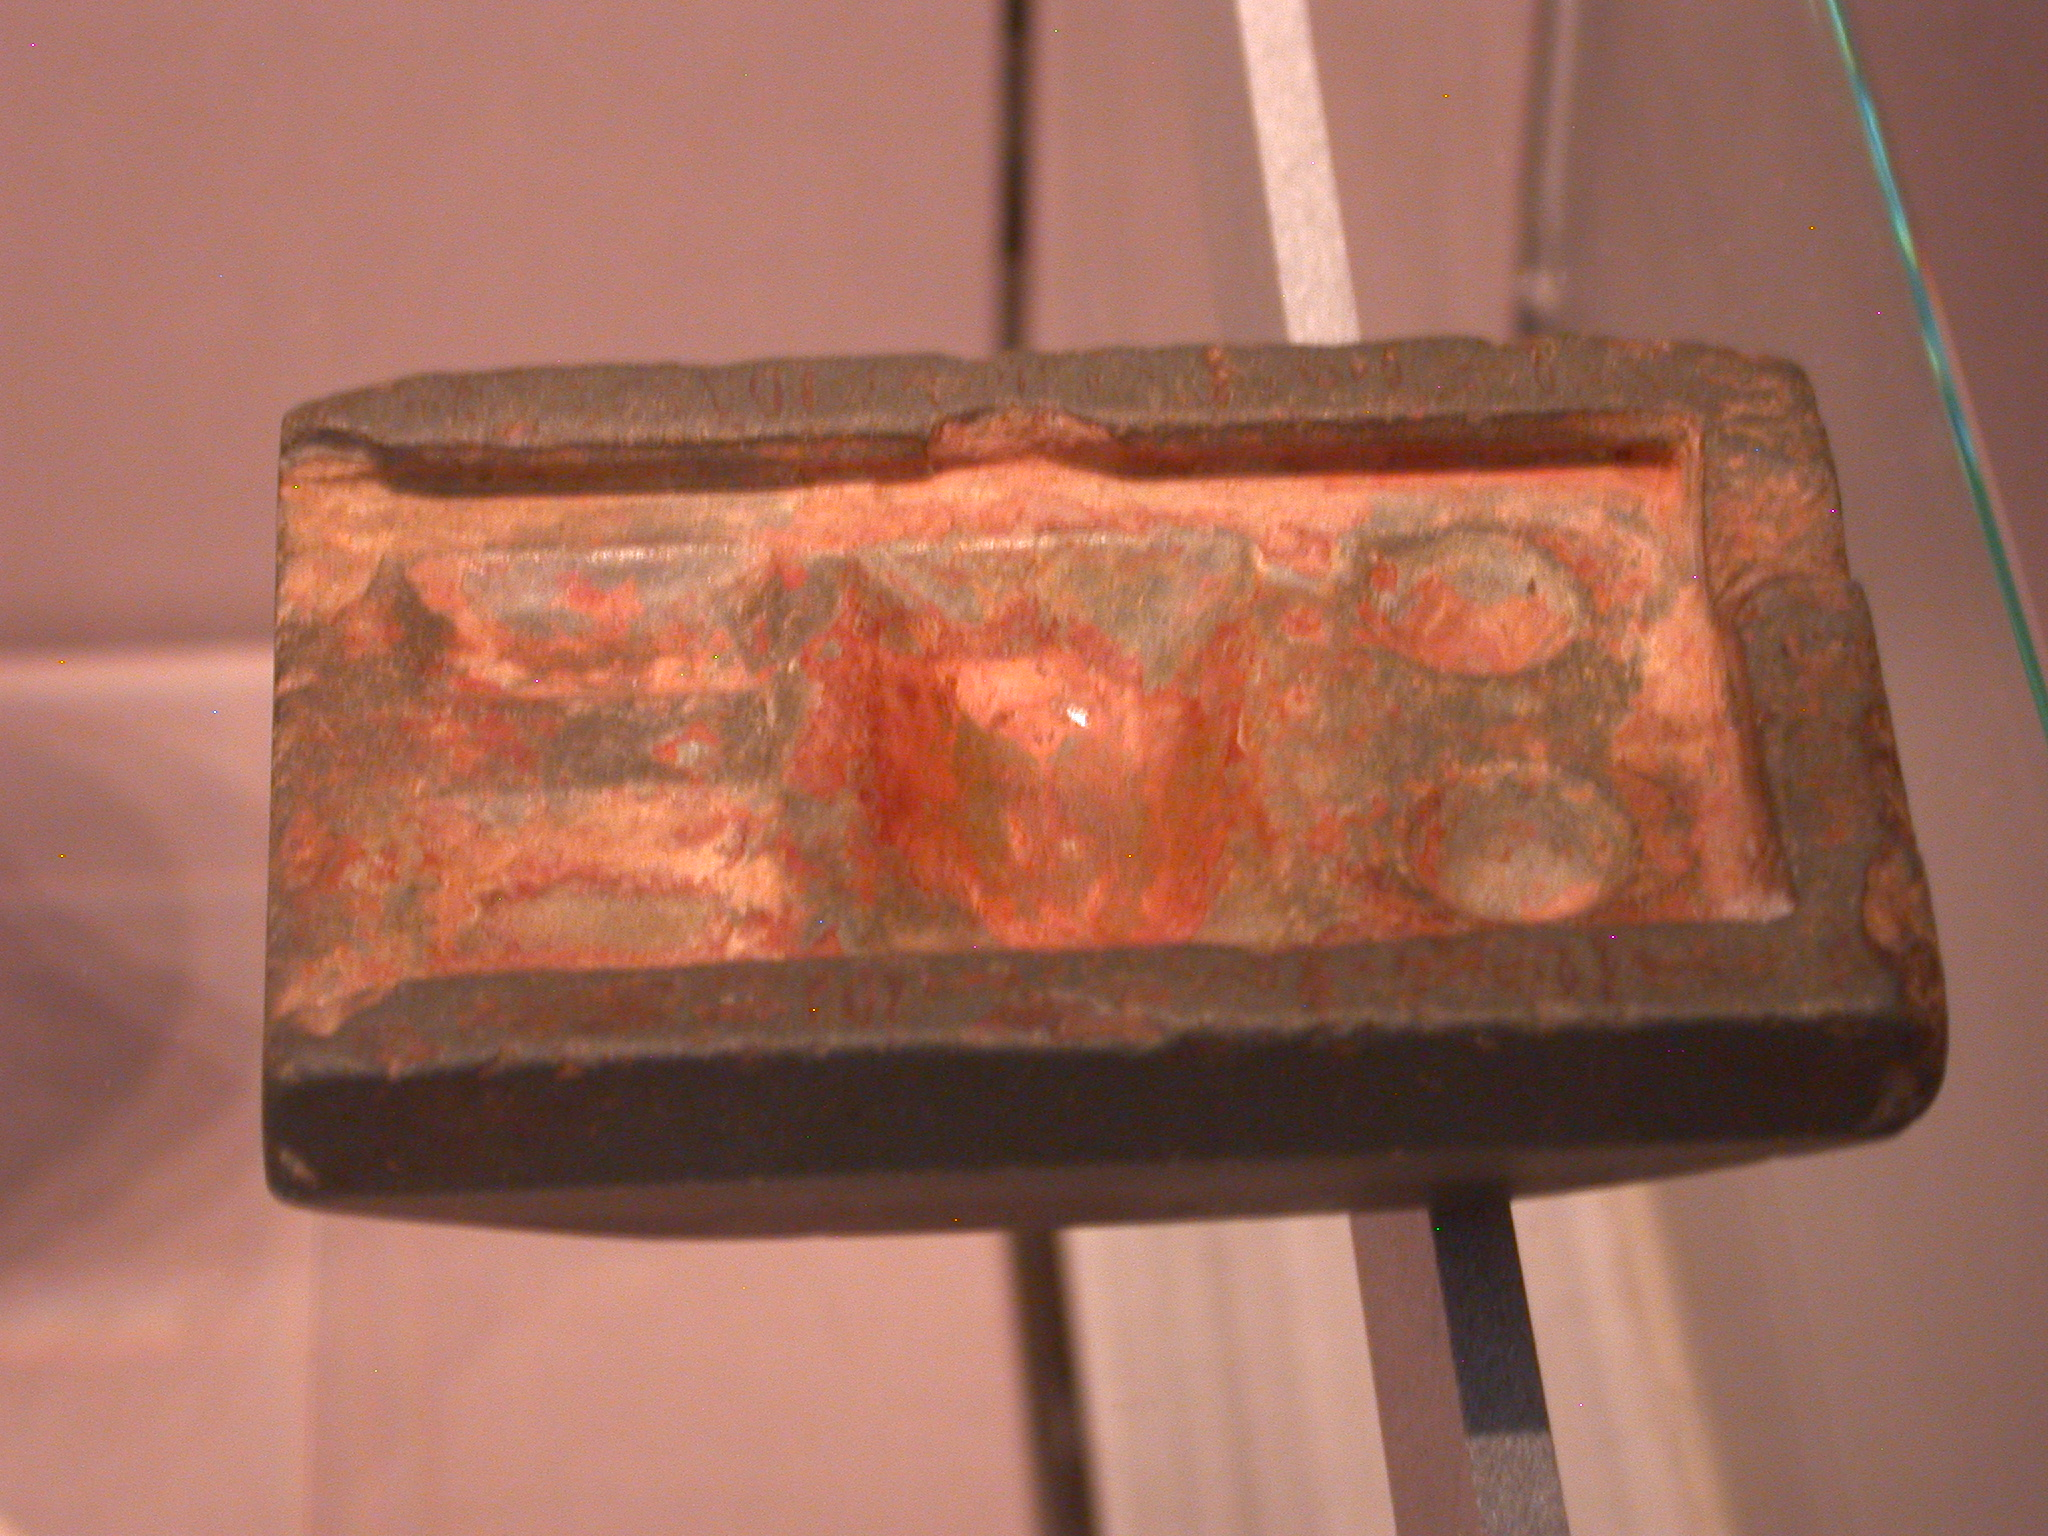 Color Palette Inscribed With Name of Ihy, Overseer of Recruits for the Palace, Slate, 5th Dynasty, 2504-2347 BCE, Egypt, in Fitzwilliam Museum, Cambridge, England